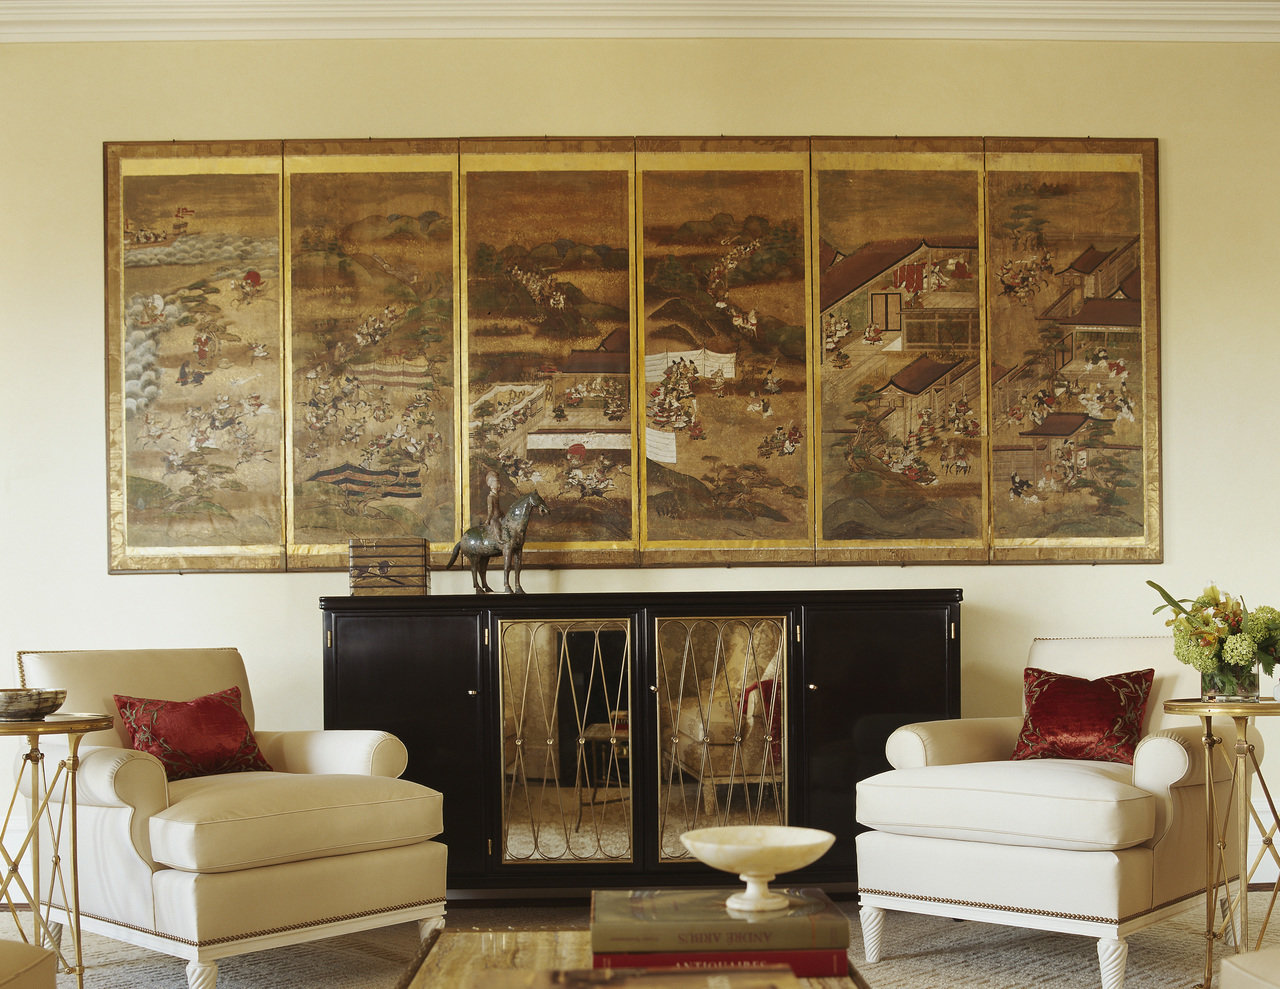 Eastern artwork and objects blend with more traditional furniture and modern accents thanks to a limi